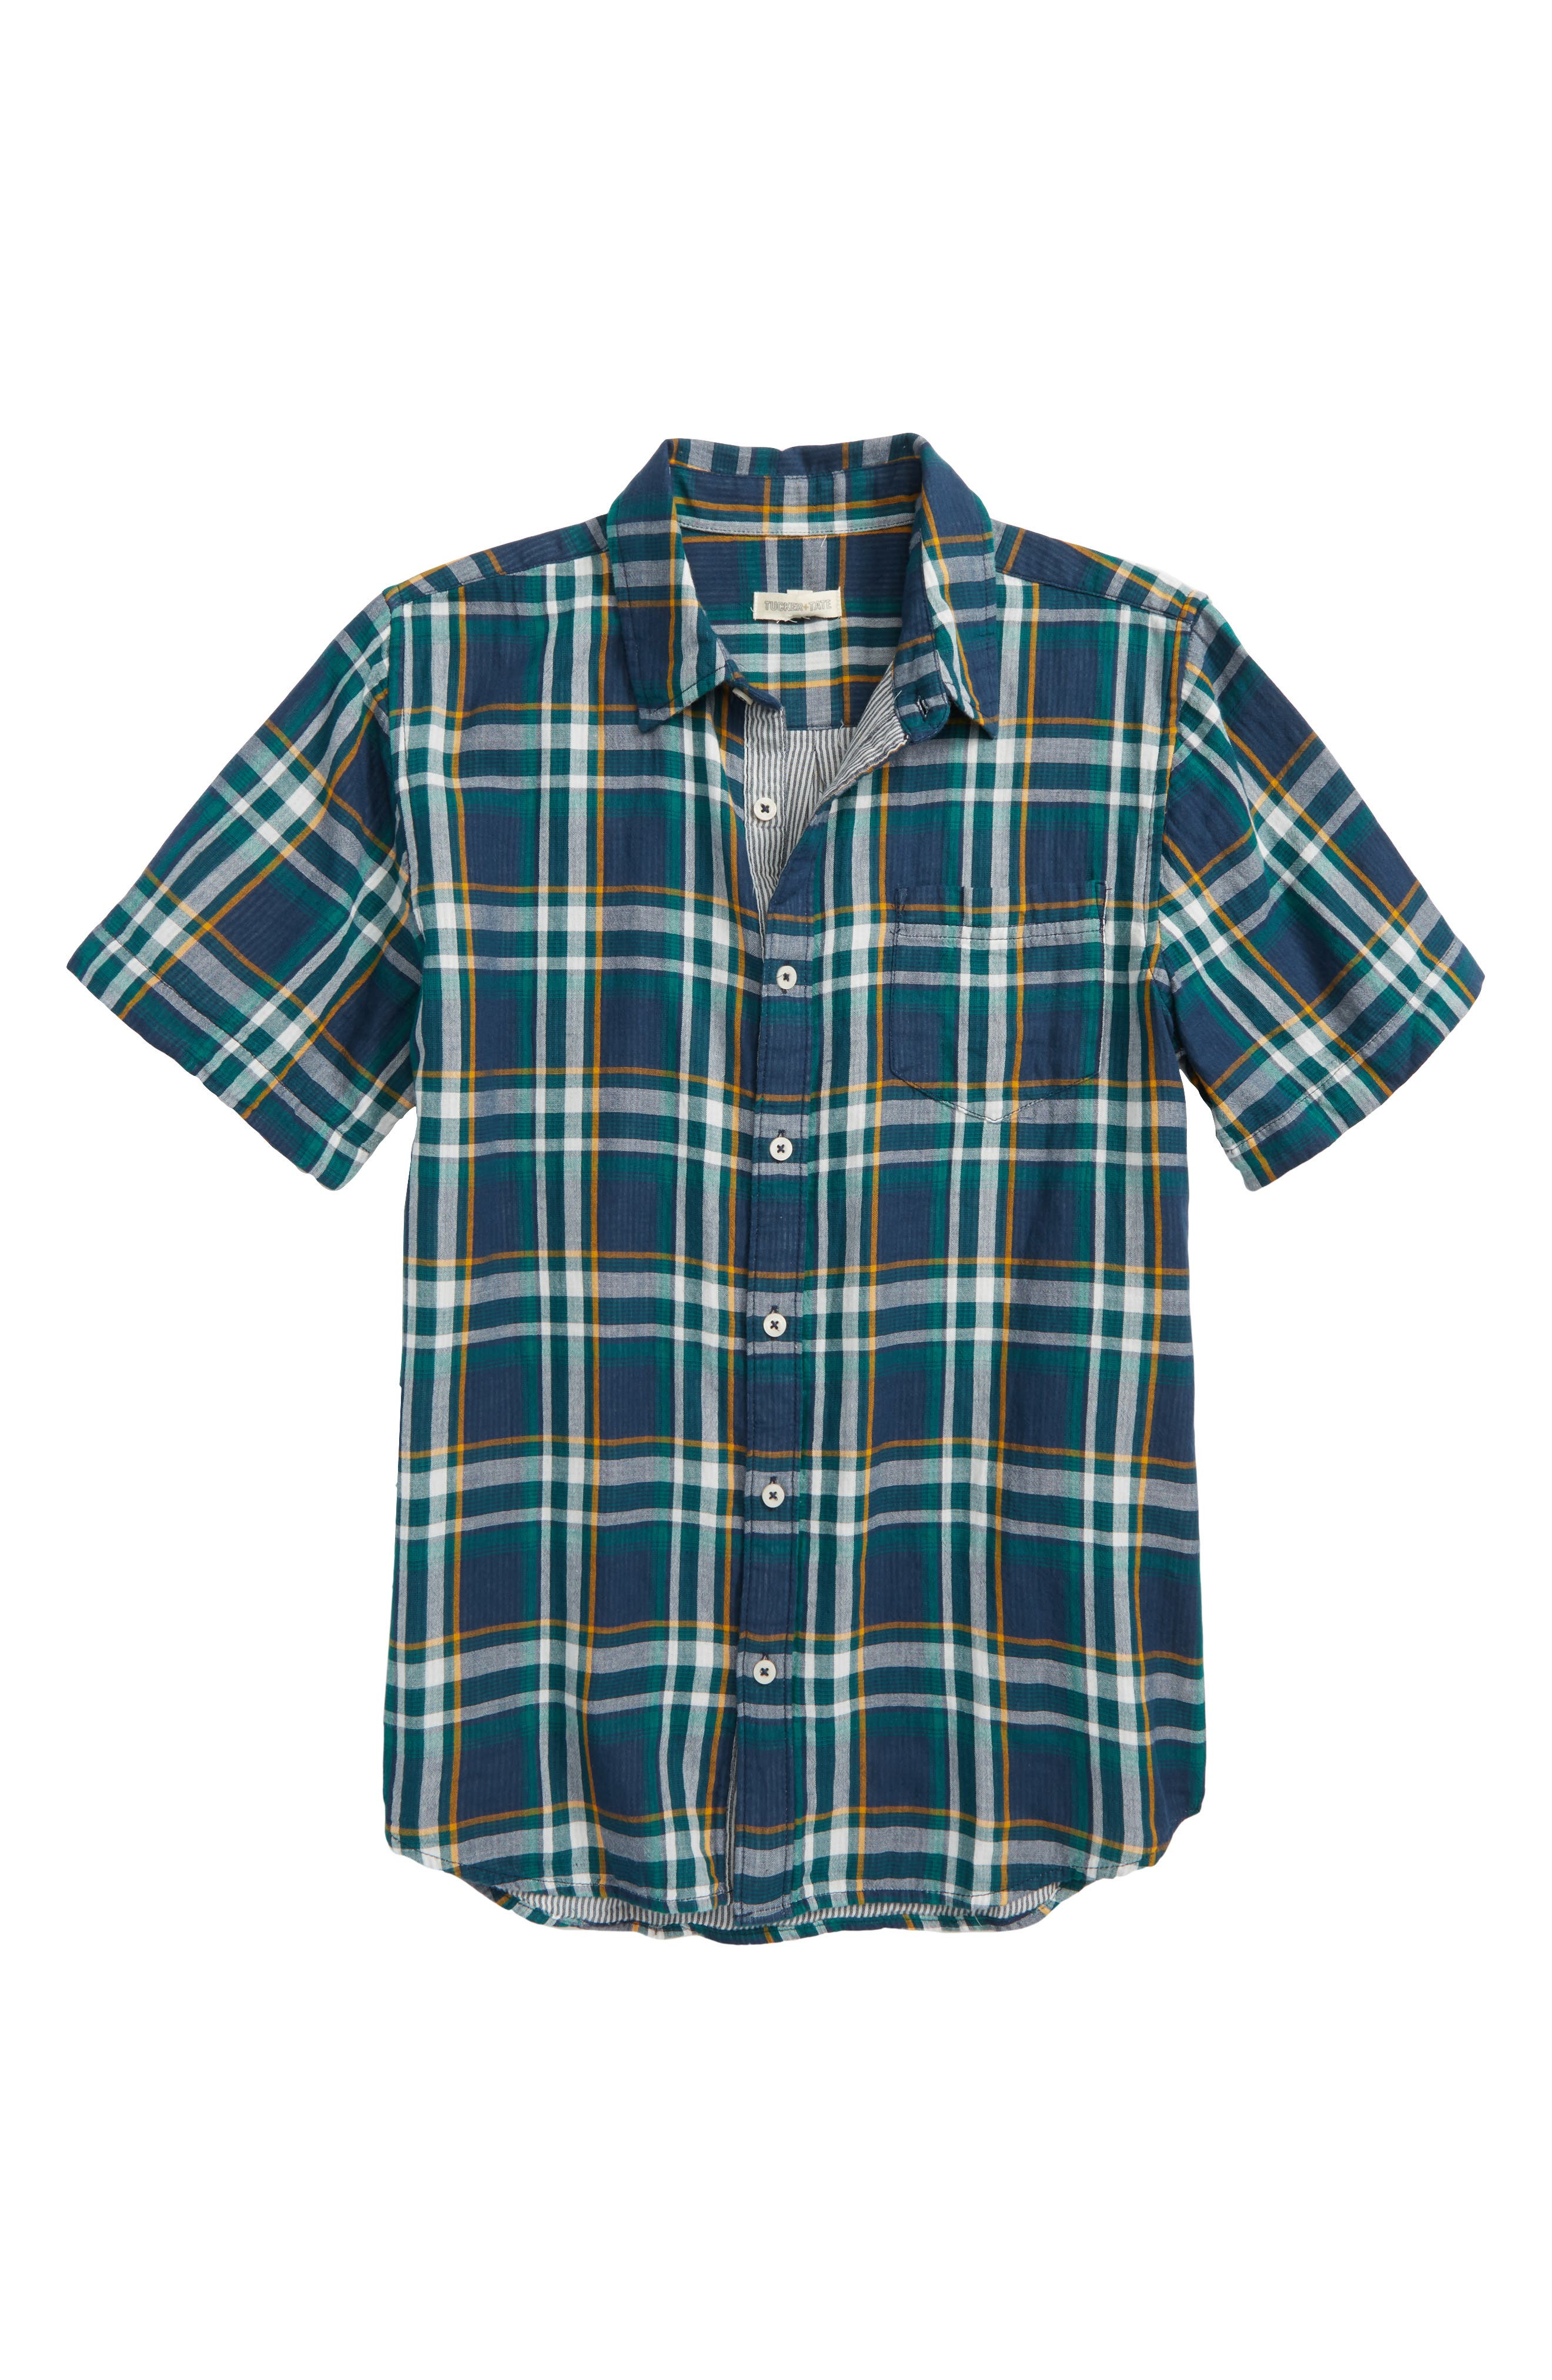 Plaid Woven Shirt,                             Main thumbnail 1, color,                             Navy Denim Multi Plaid